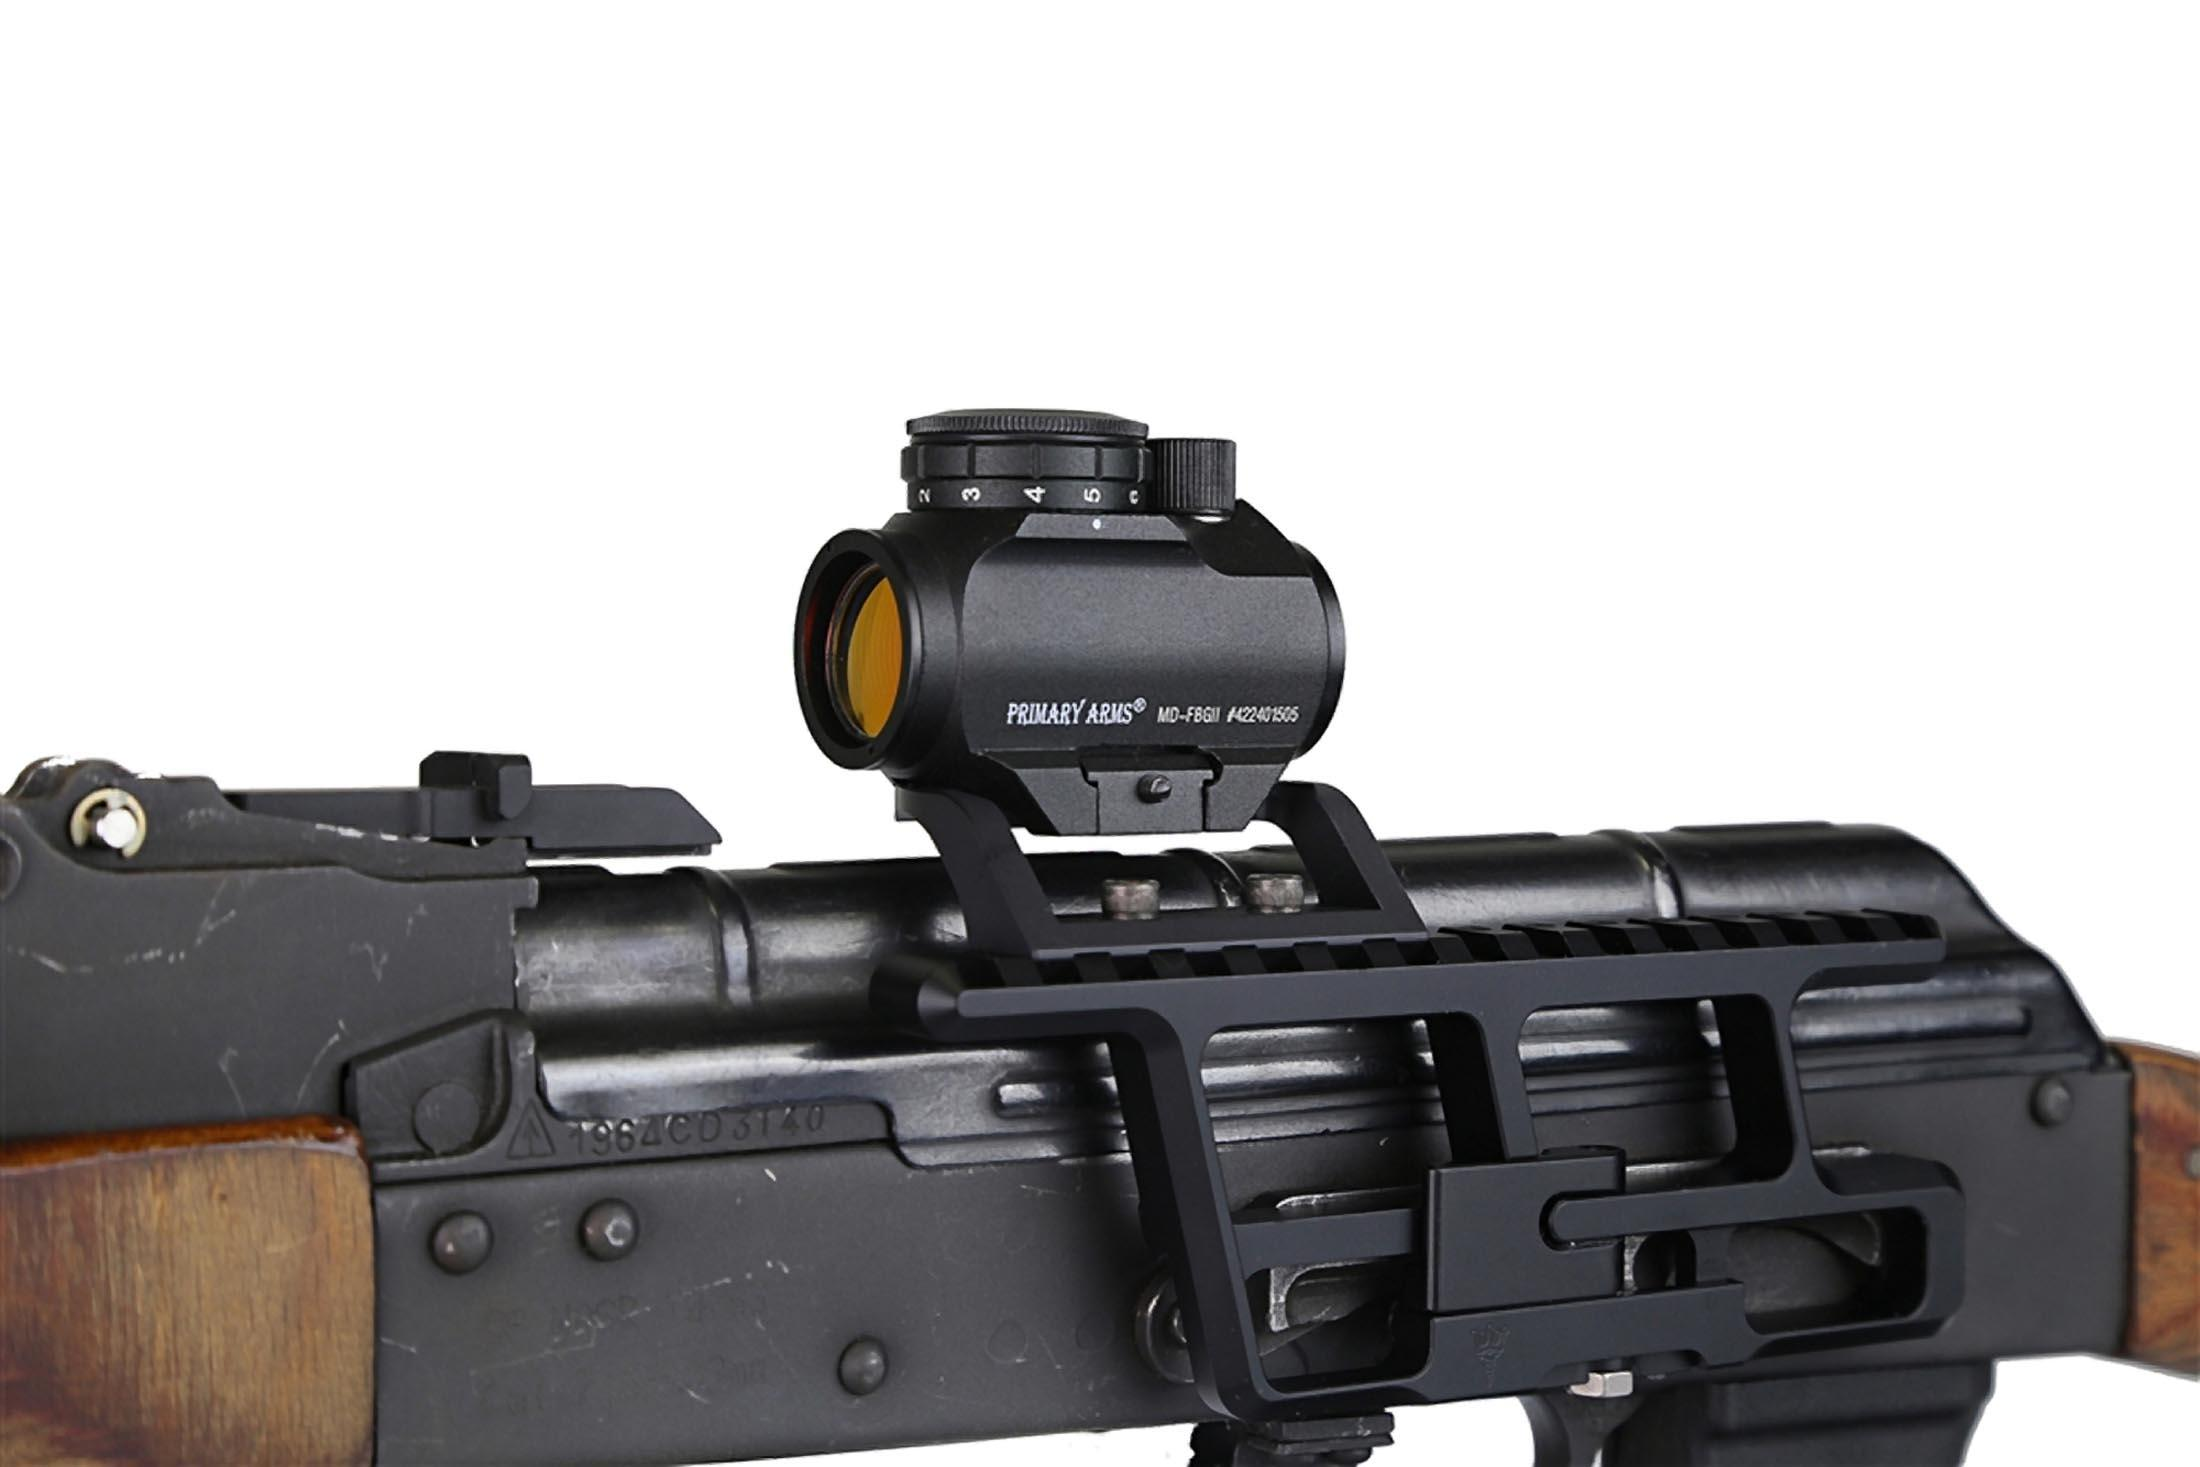 The RS mount AKMD attached to an AK47 with a primary arms micro dot sight